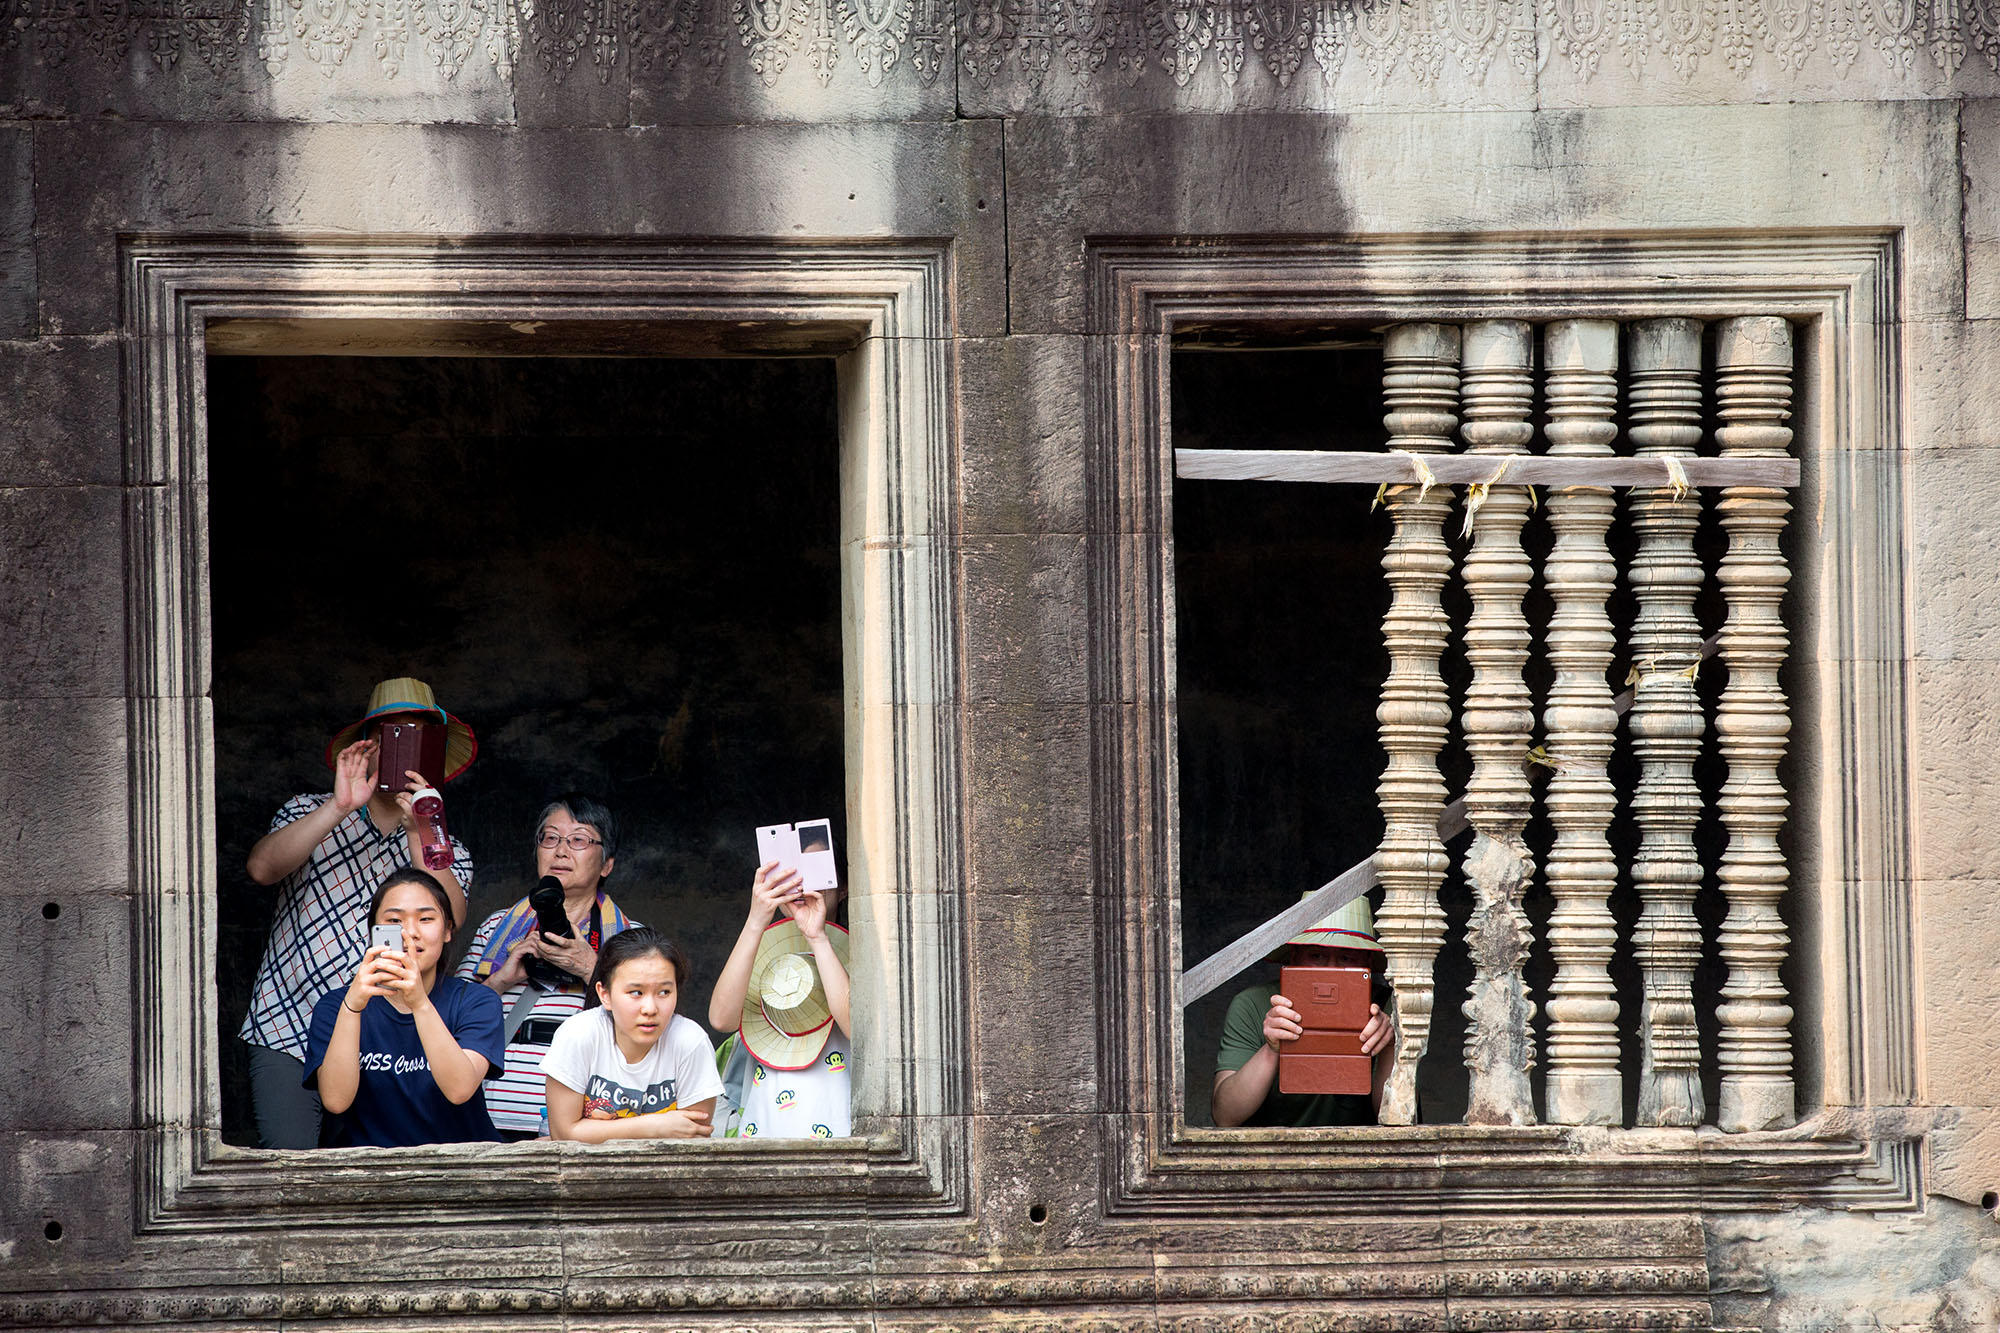 Bystanders take photos as the First Lady tours Angkor Wat. (Official White House Photo by Amanda Lucidon)